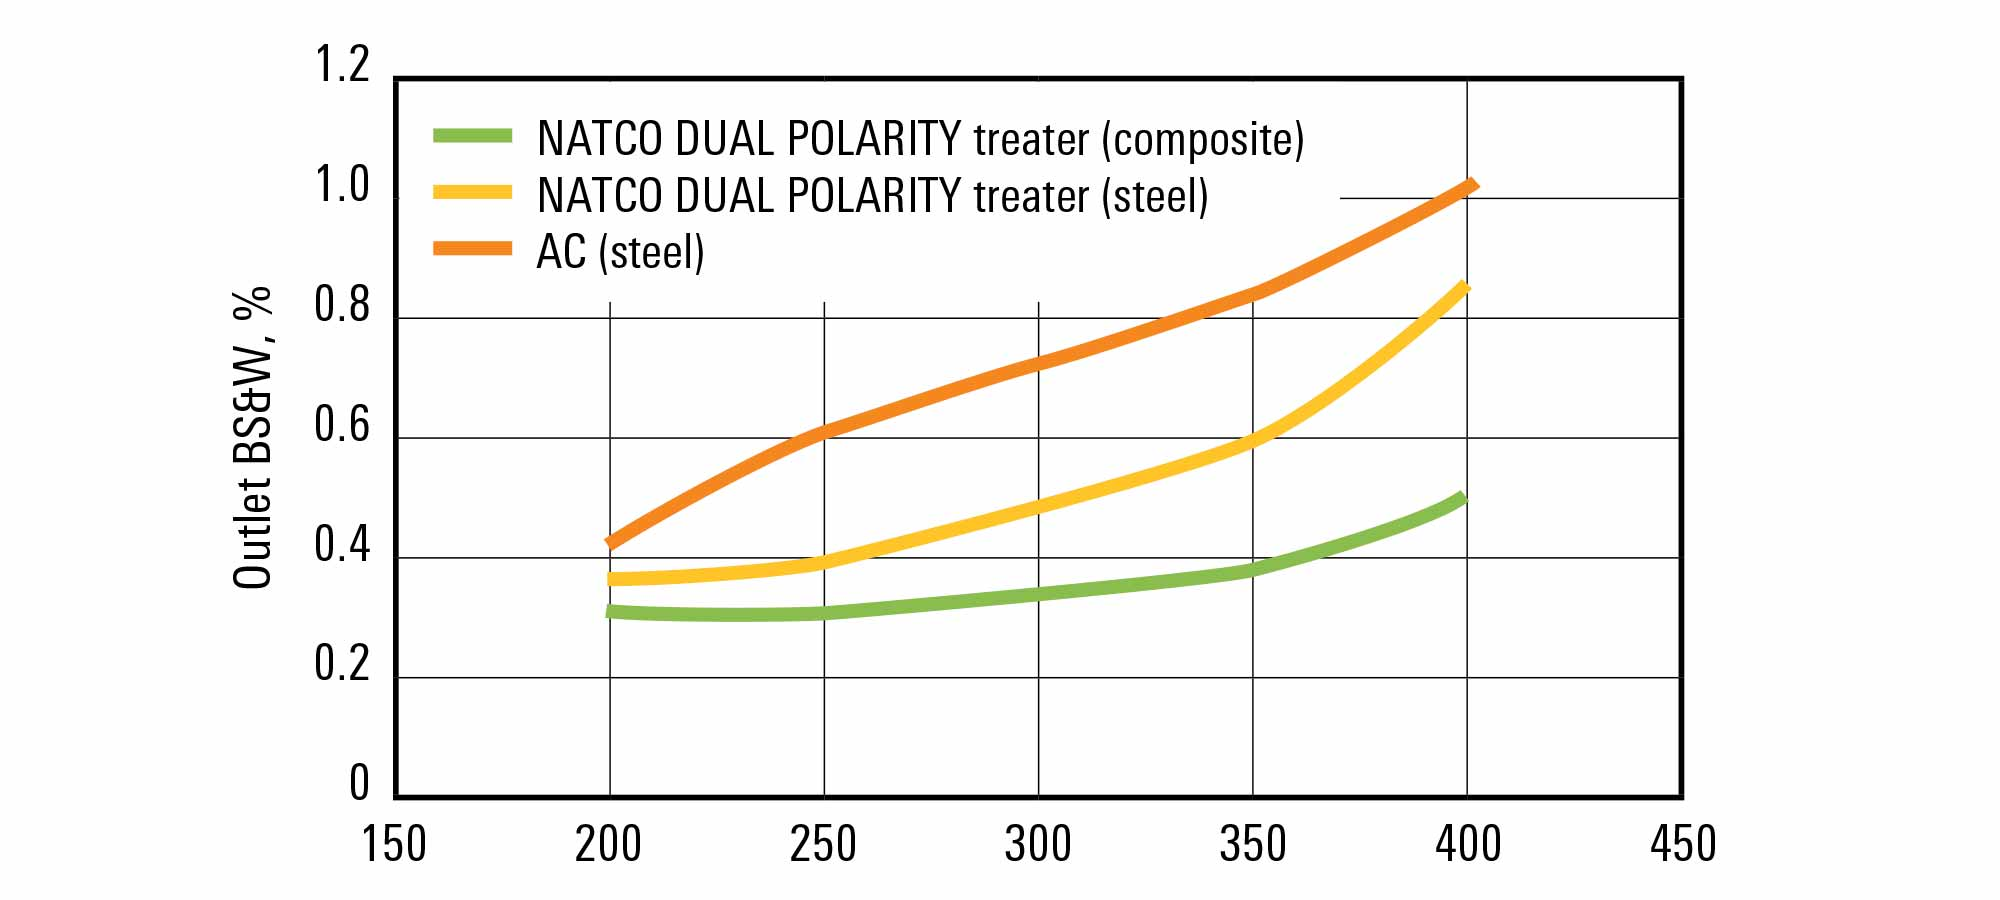 Performance comparisons of NATCO DUAL POLARITY treater